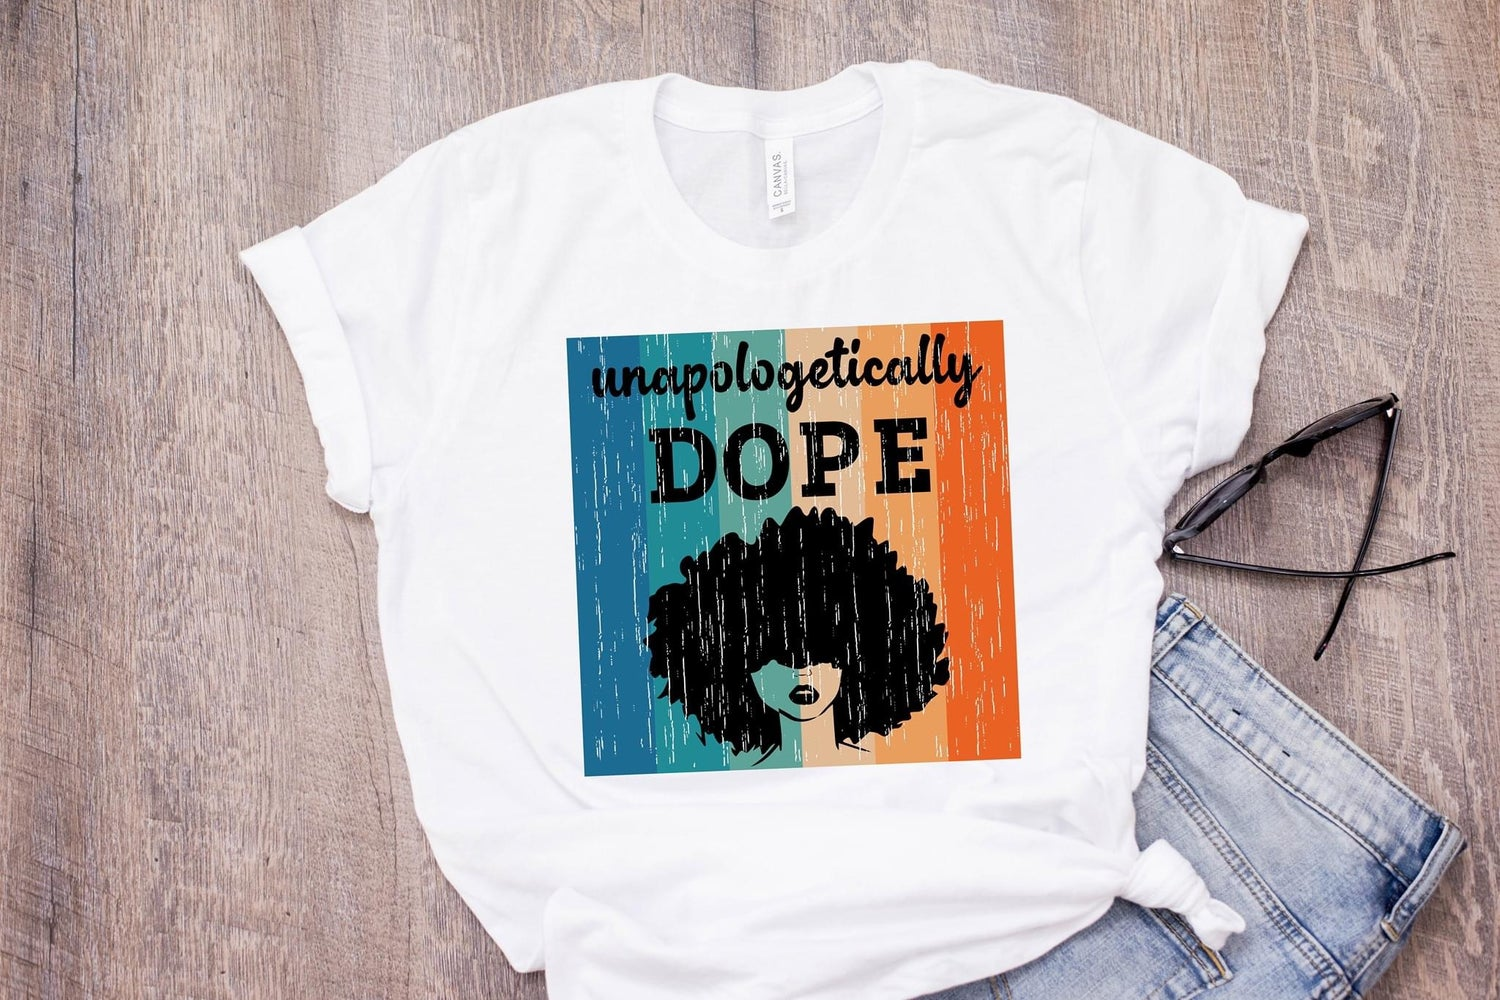 Image of Unapologetically DOPE!